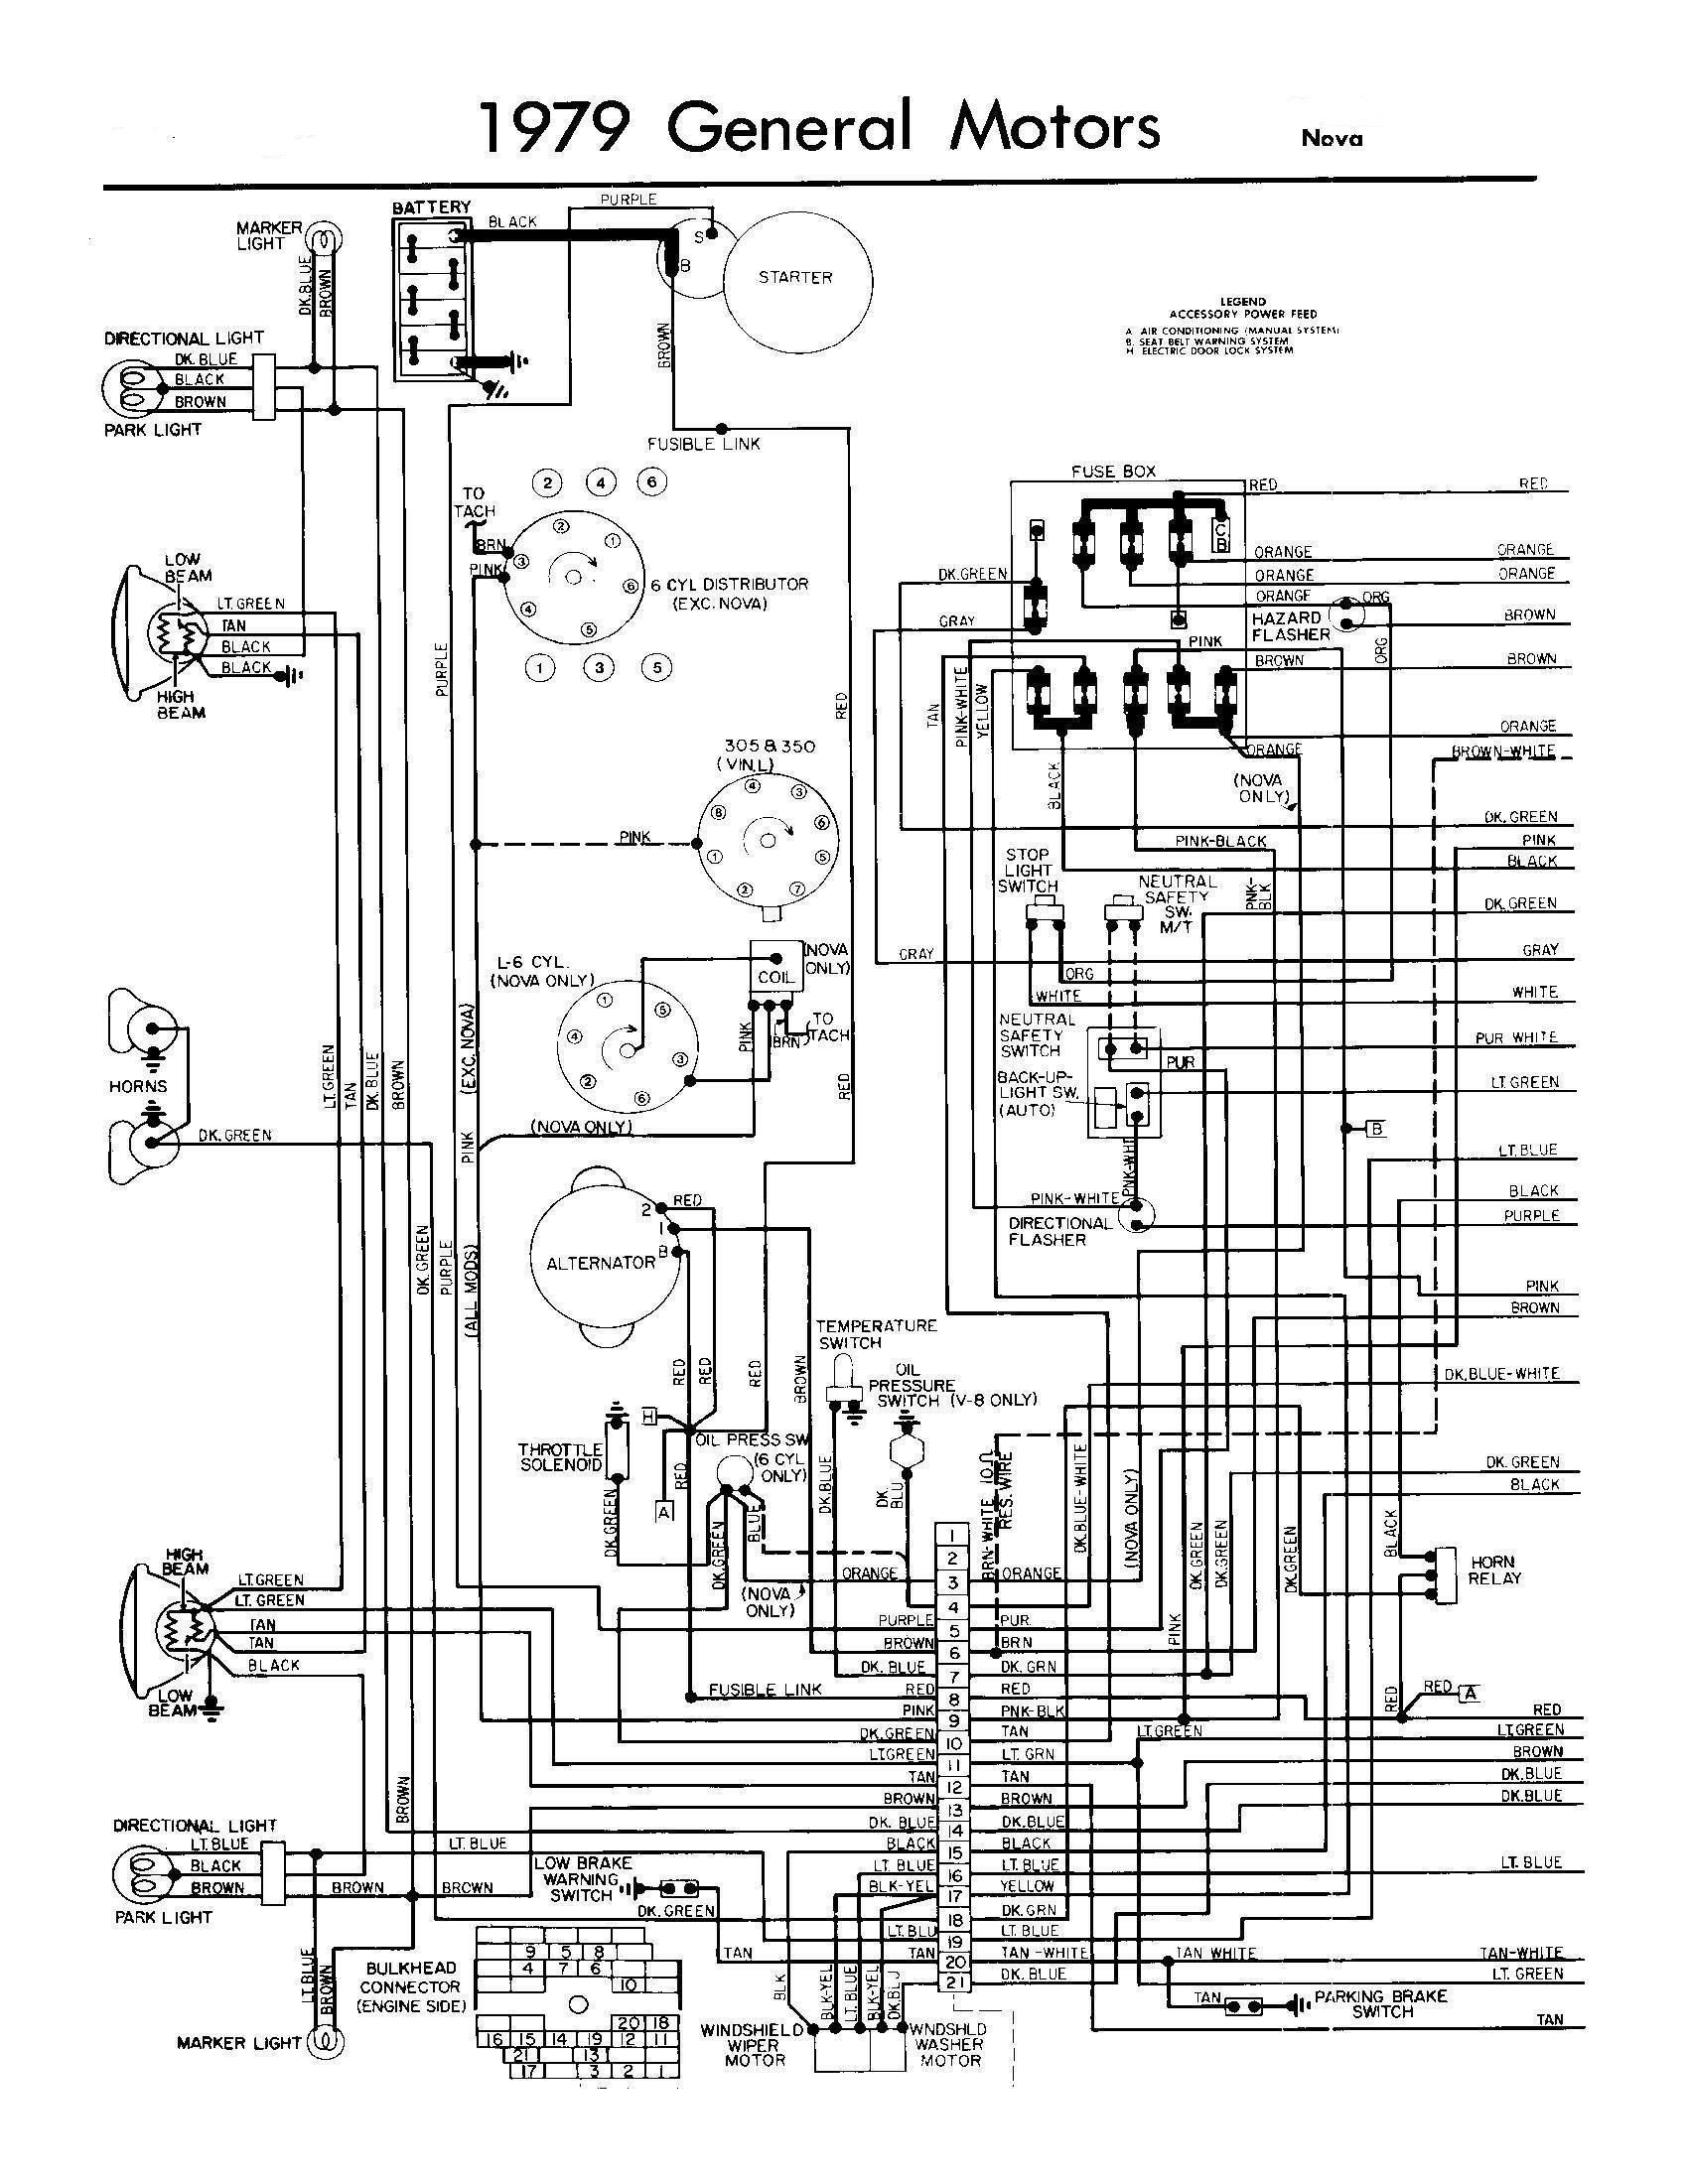 55 New Bobcat 743 Starter Wiring Diagram In 2020 Chevy Trucks 1979 Chevy Truck 79 Chevy Truck